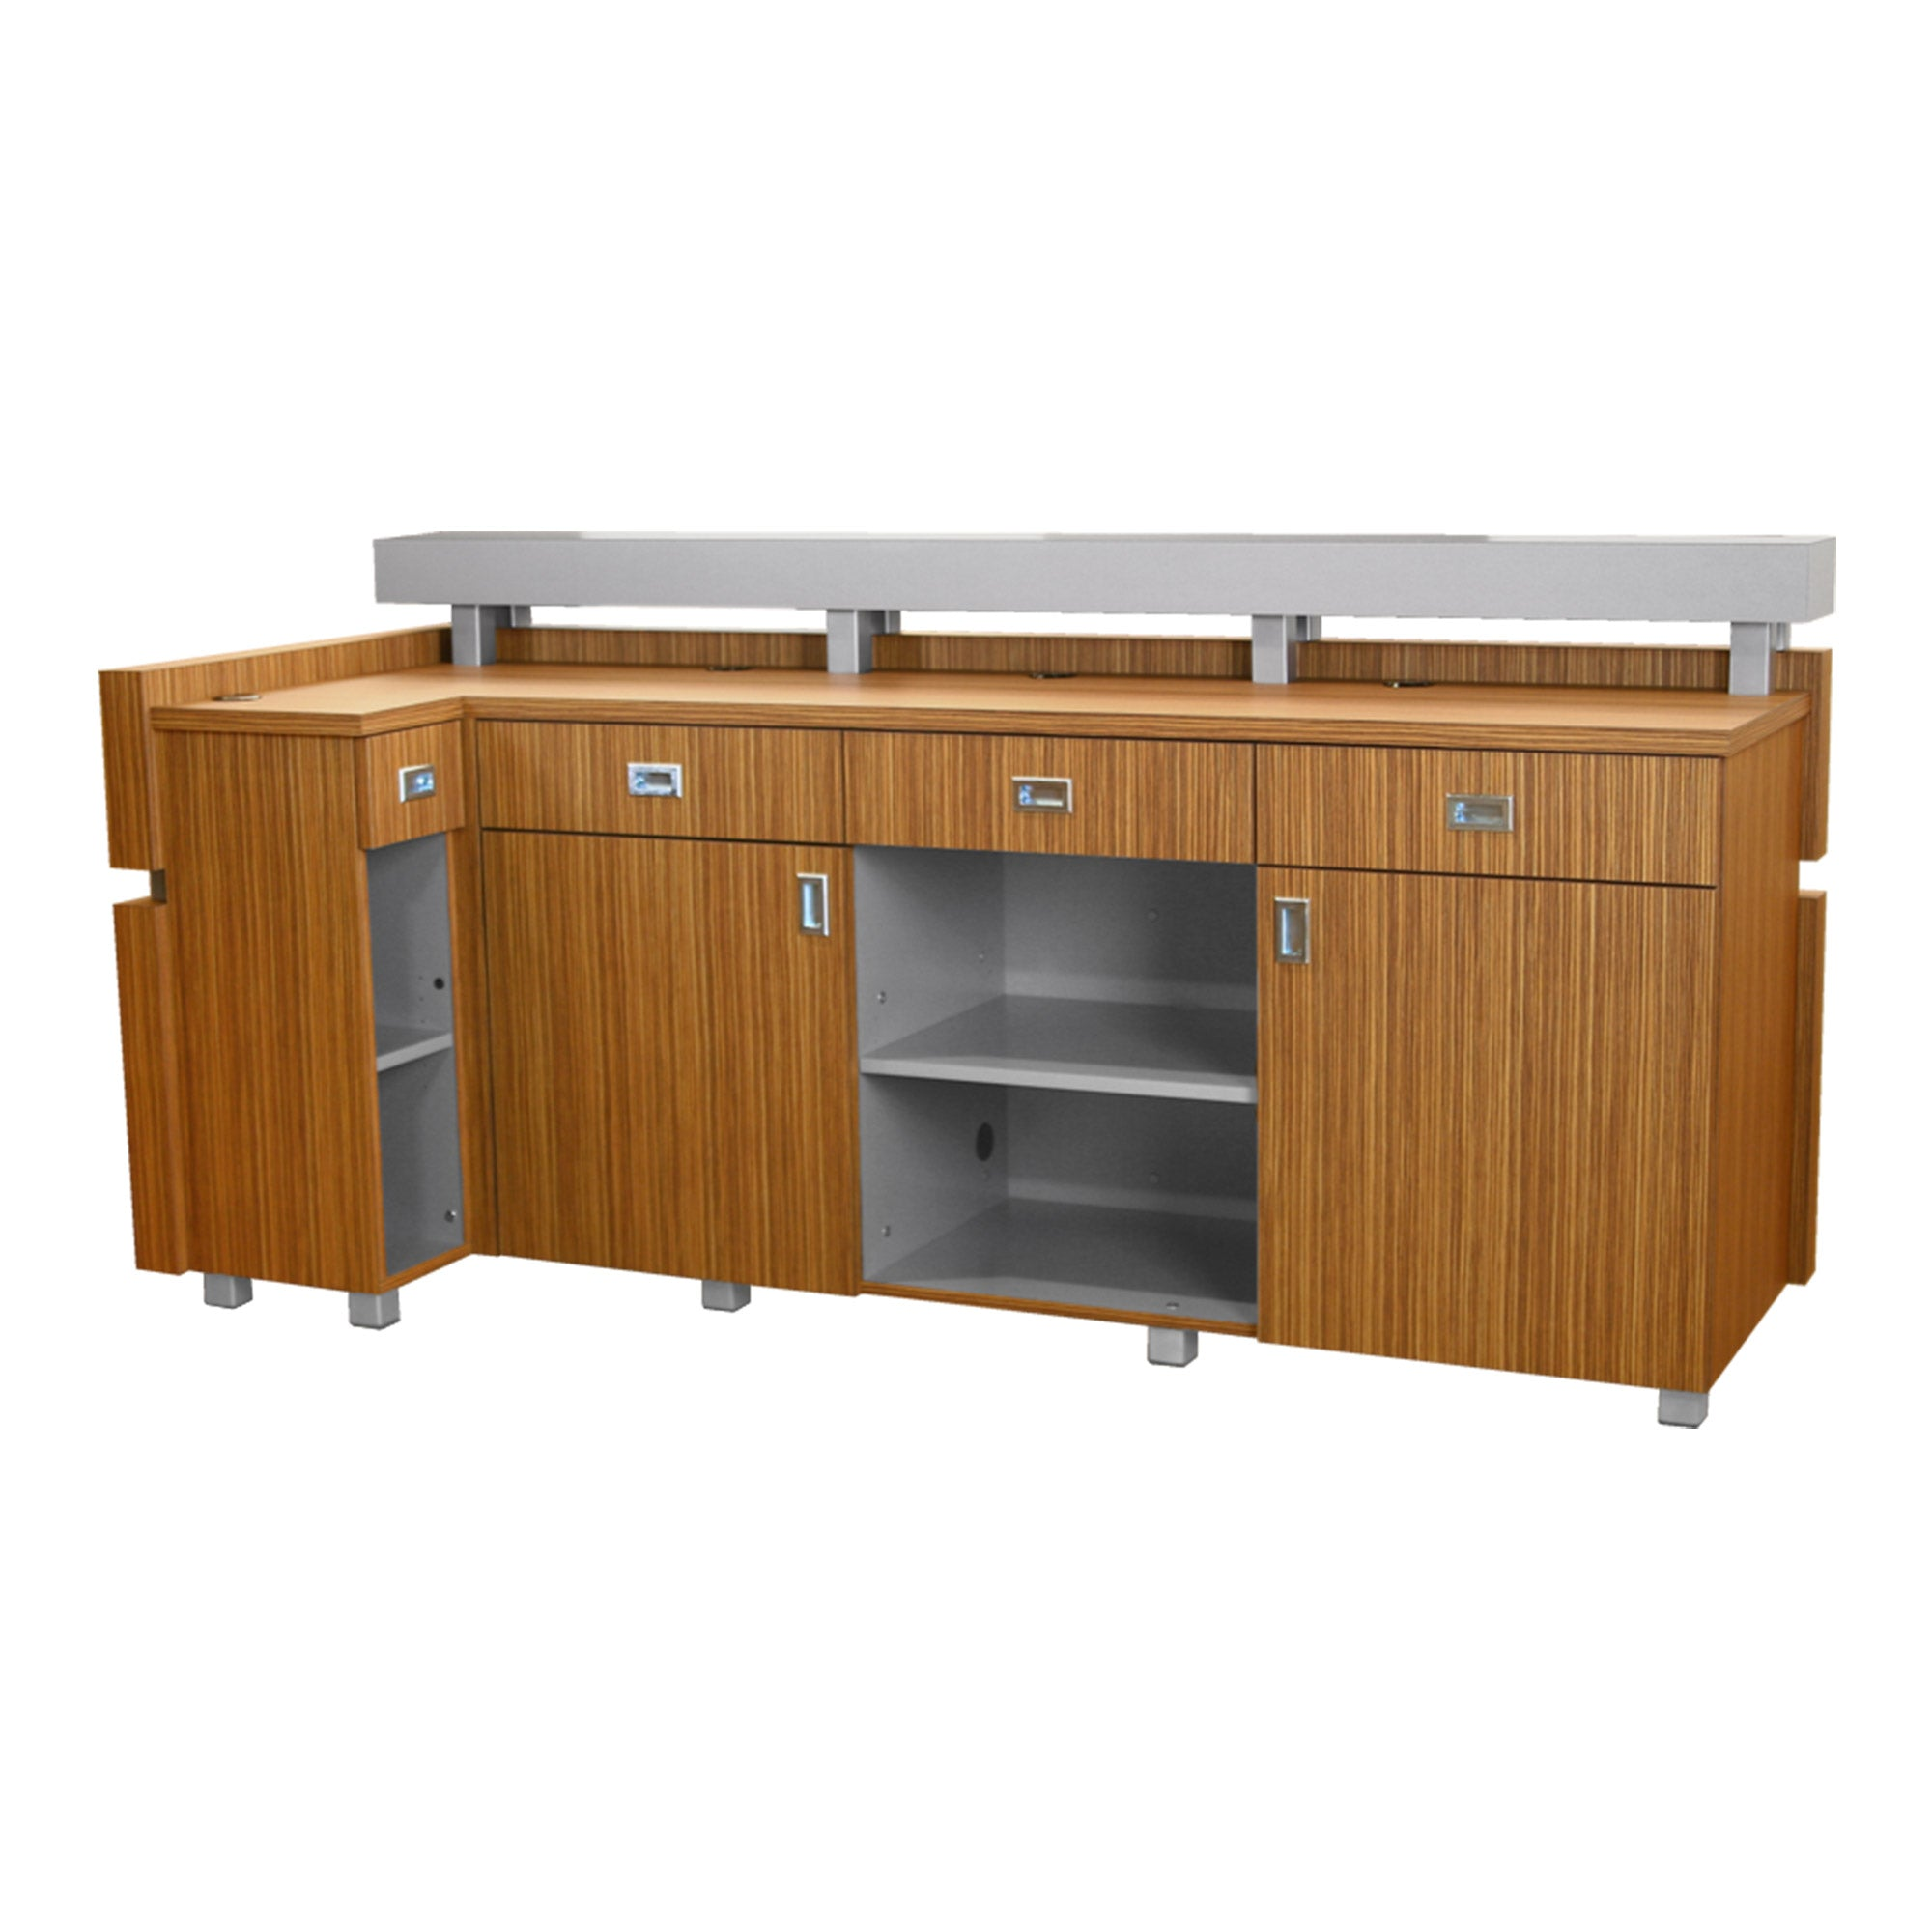 Darren Reception Desk - Collins